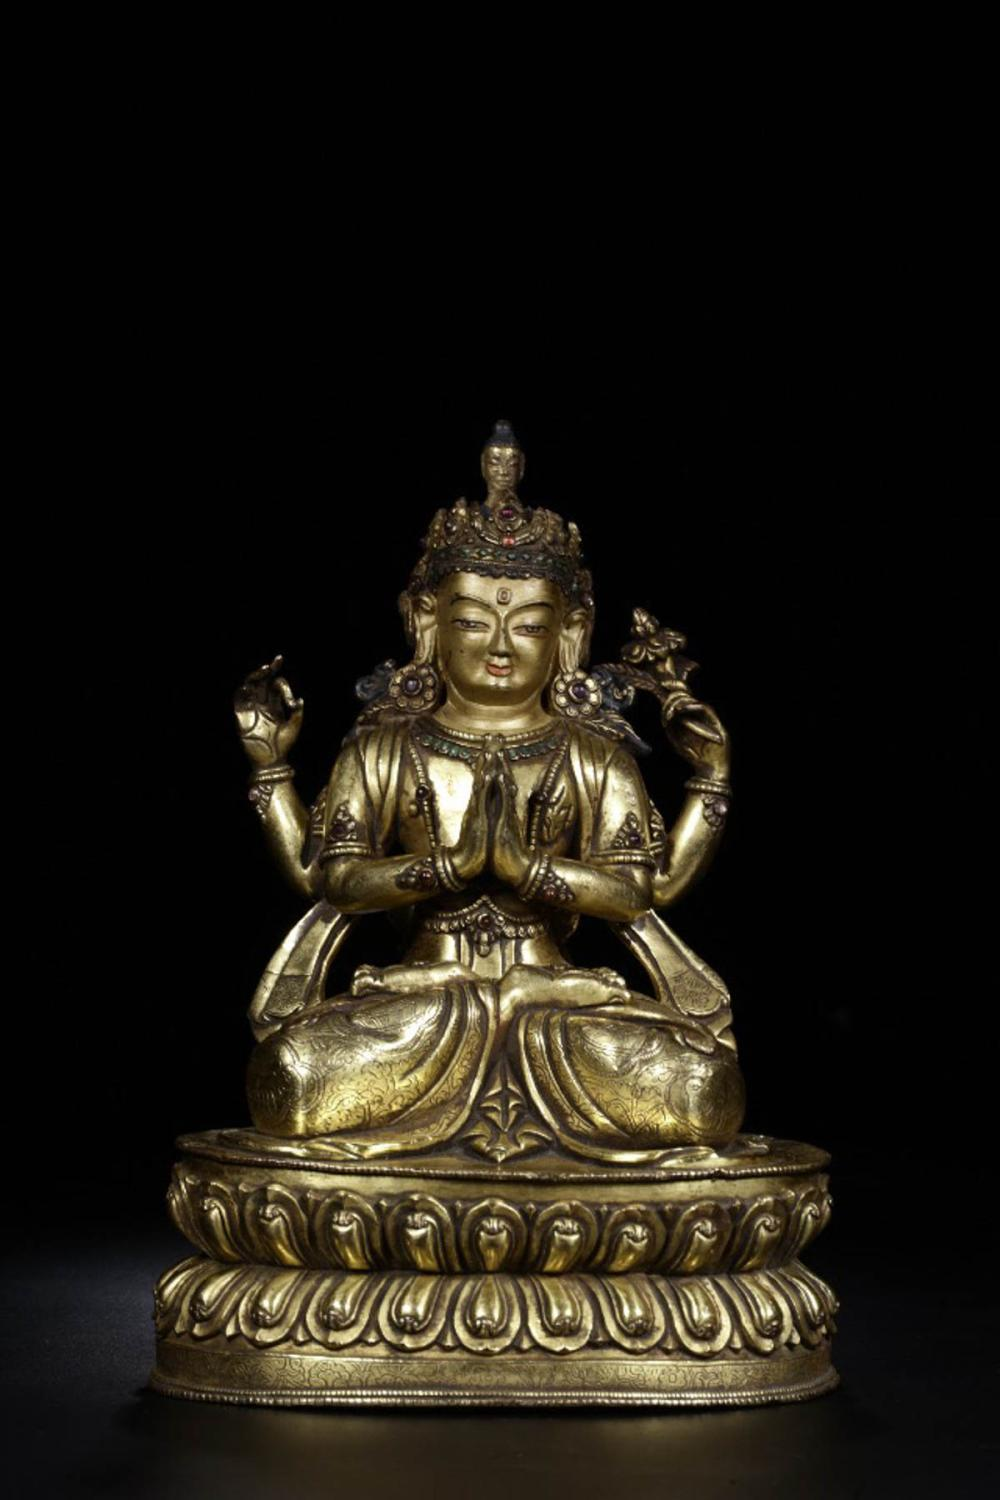 A GILT BRONZE FOUR ARMS GUANYIN BUDDHA